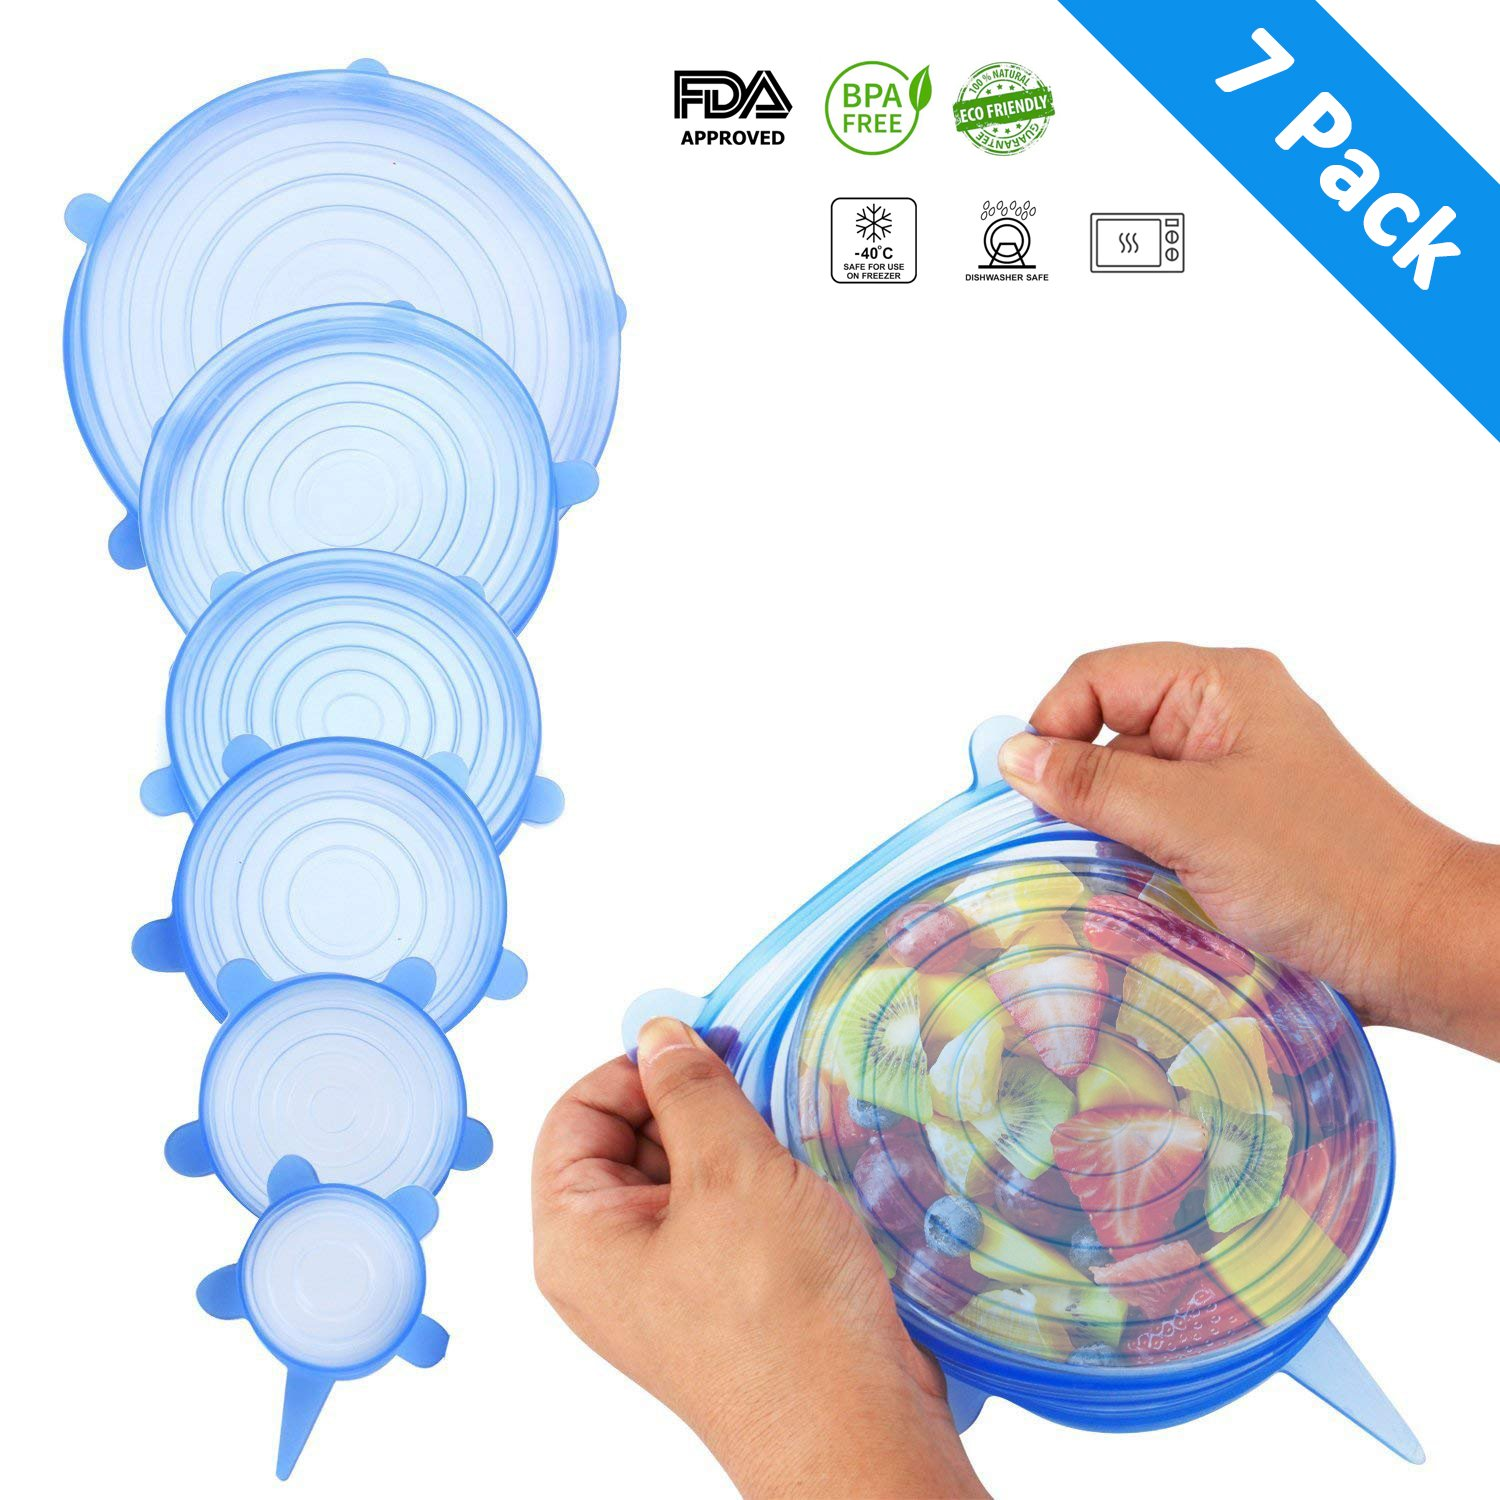 Silicone Stretch Lids - 7 Pack-Extra Large 9.4'' - Silicone Covers for Food & Leftovers - Keep food fresh - THETIS Homes